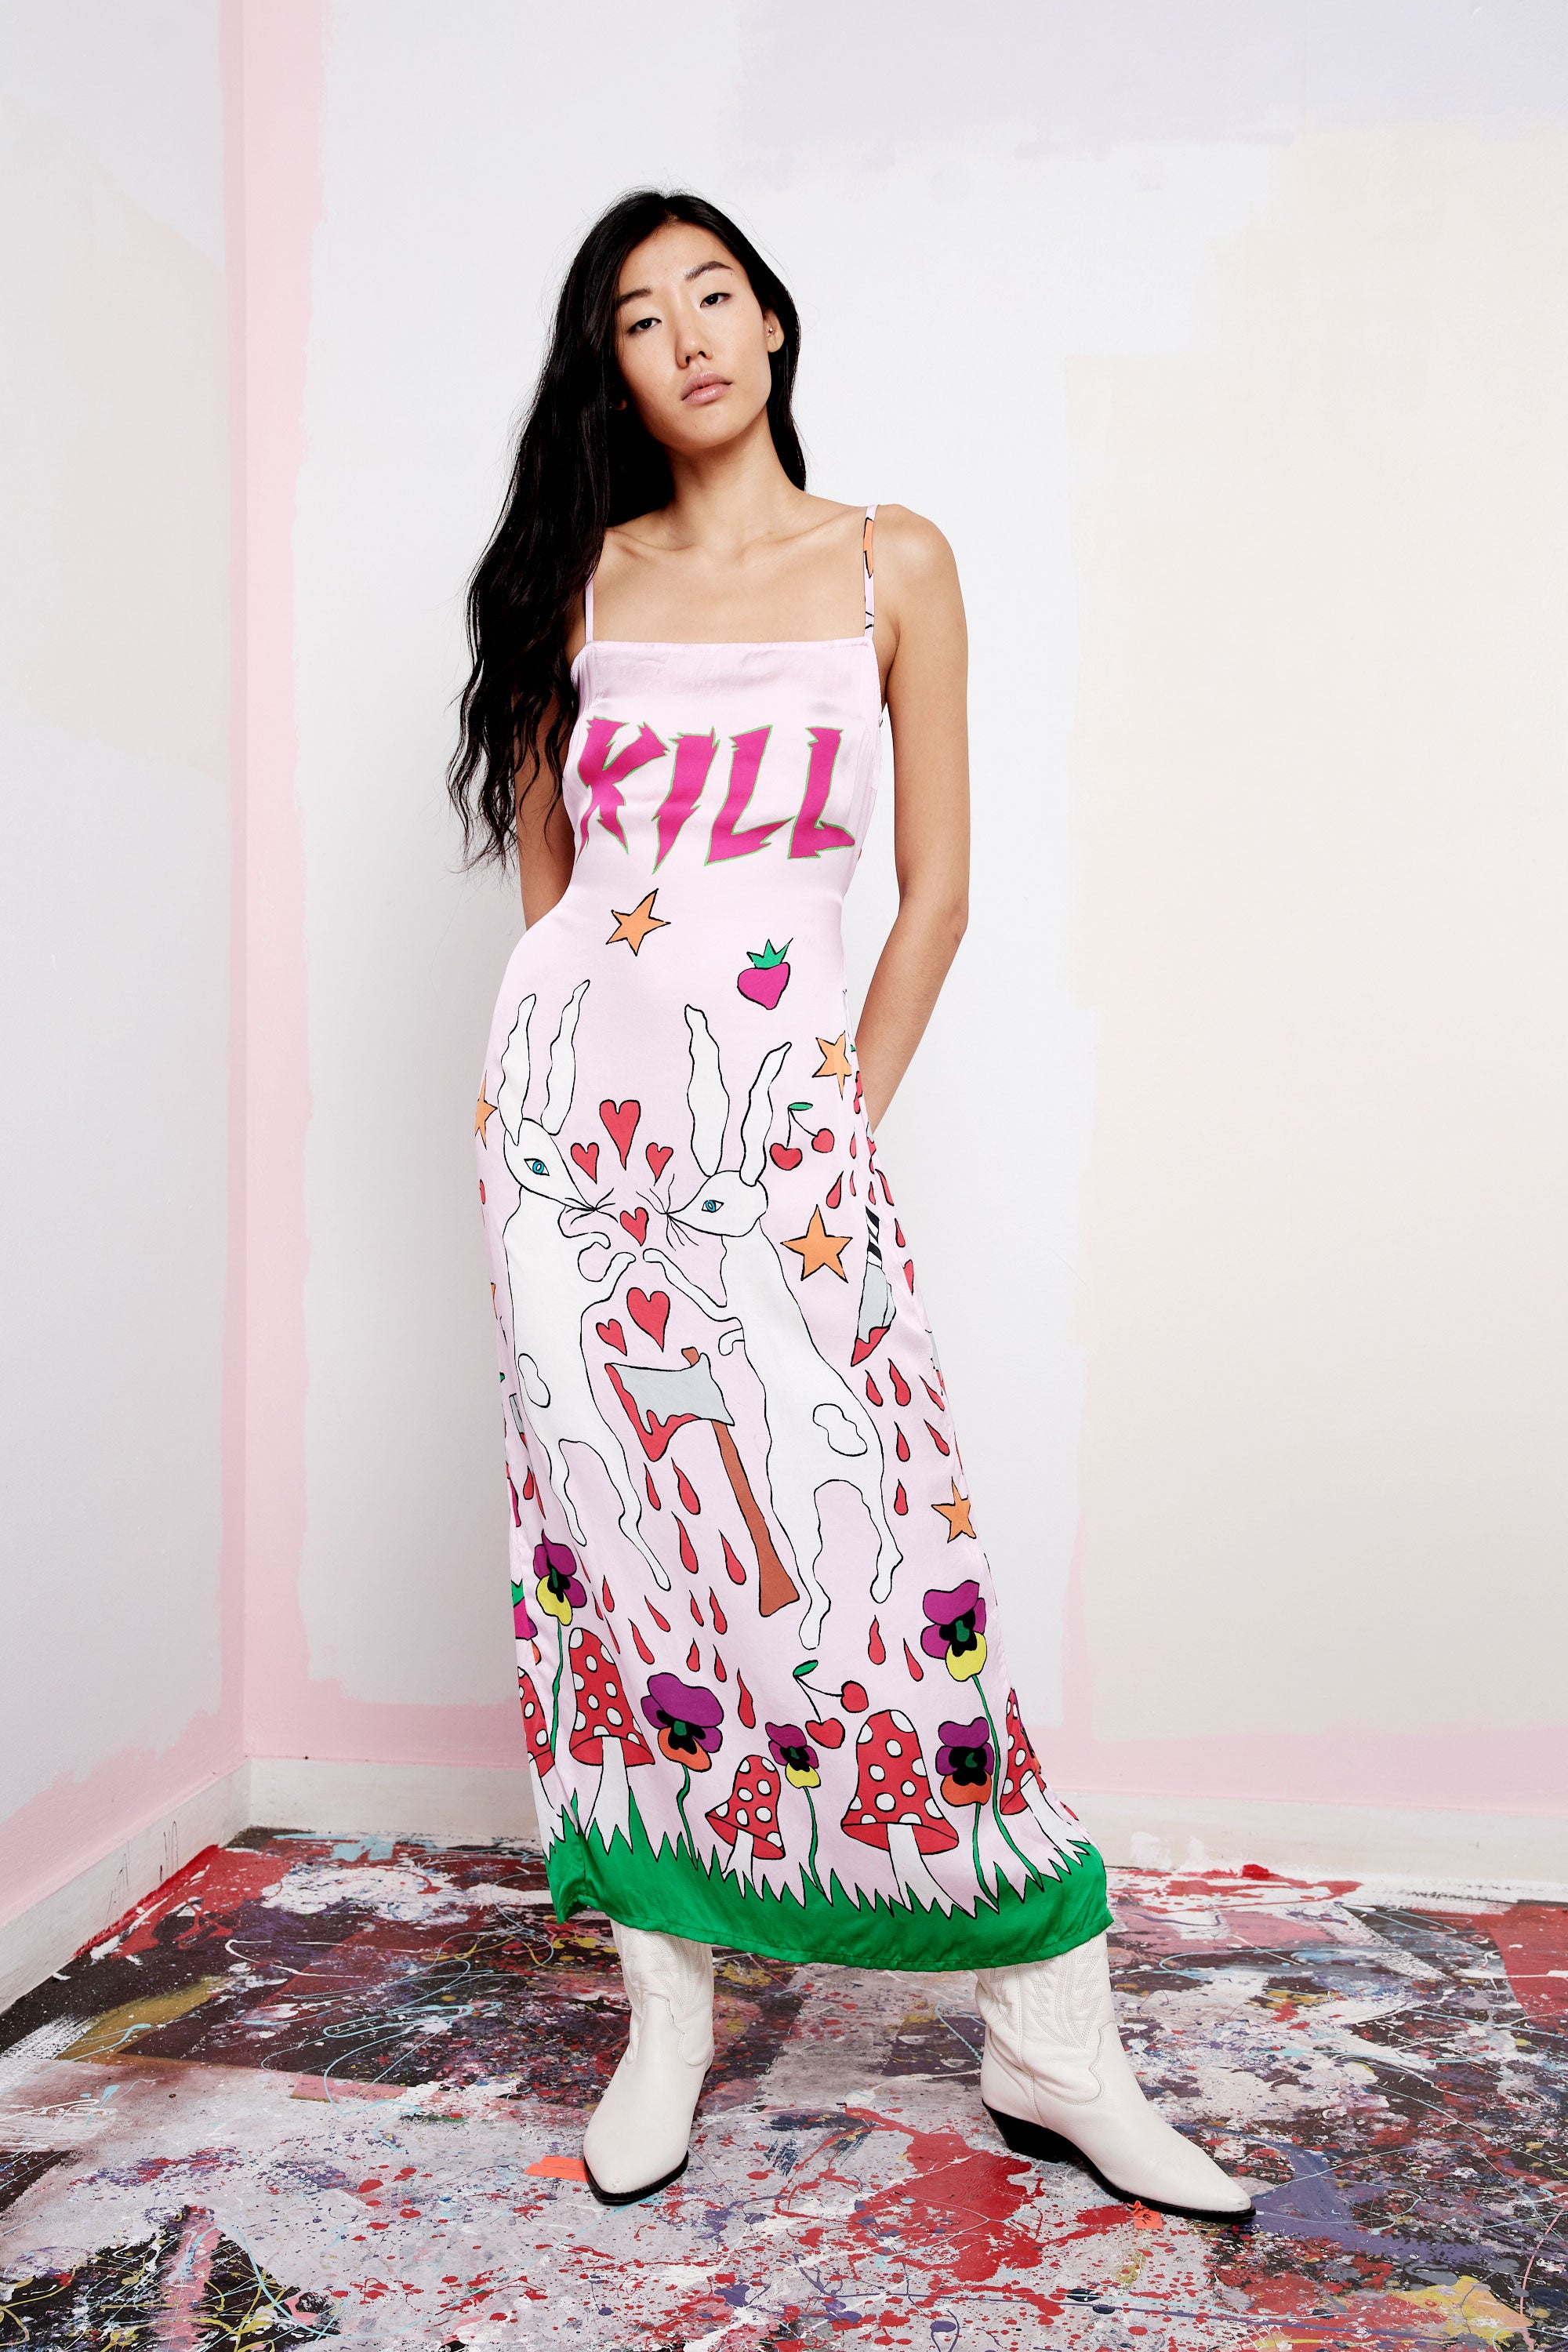 The Kill Kill Kill Slip Dress